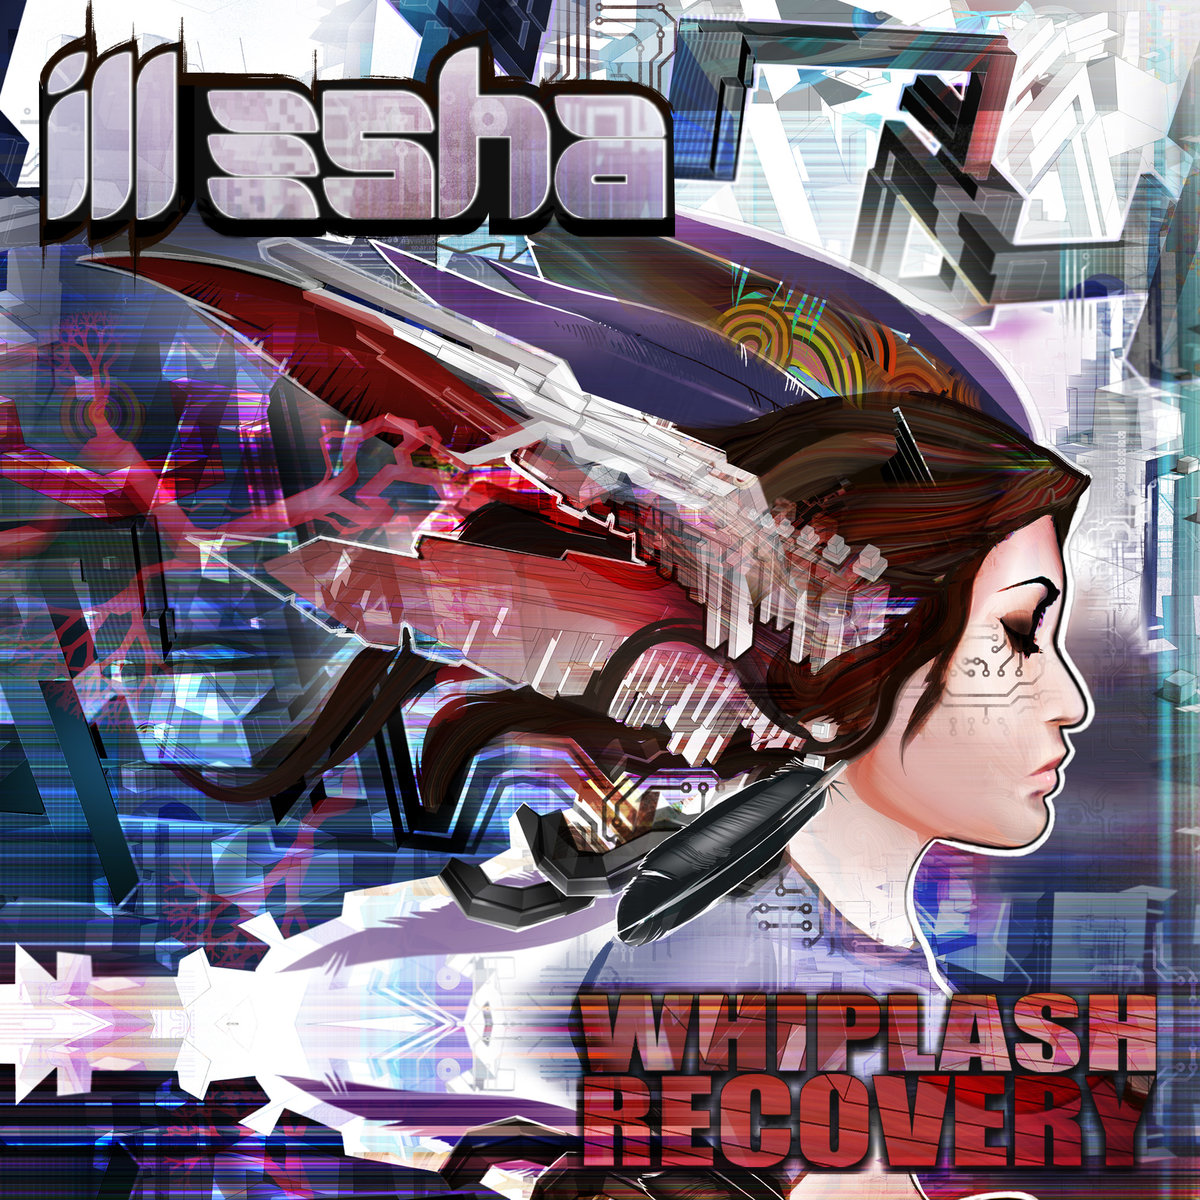 ill-esha - Whiplash Recovery (Full Version) @ 'Whiplash Recovery' album (california, denver)